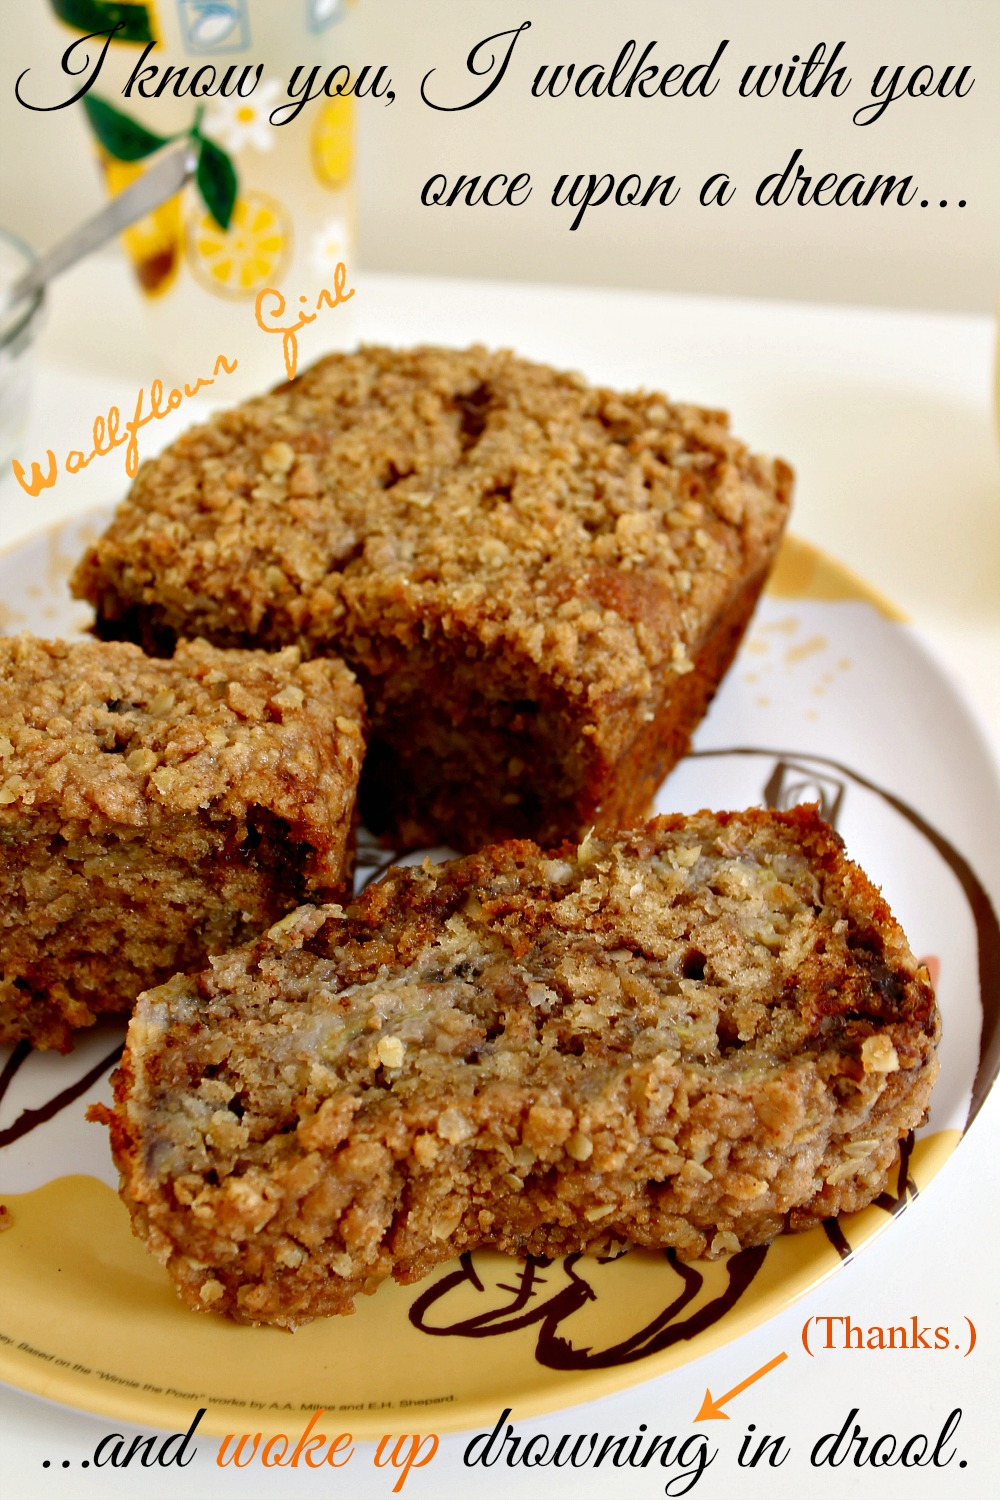 Scrumdiddlyumptious Caramelized Banana and Toasted Coconut Banana Bread 21--013014